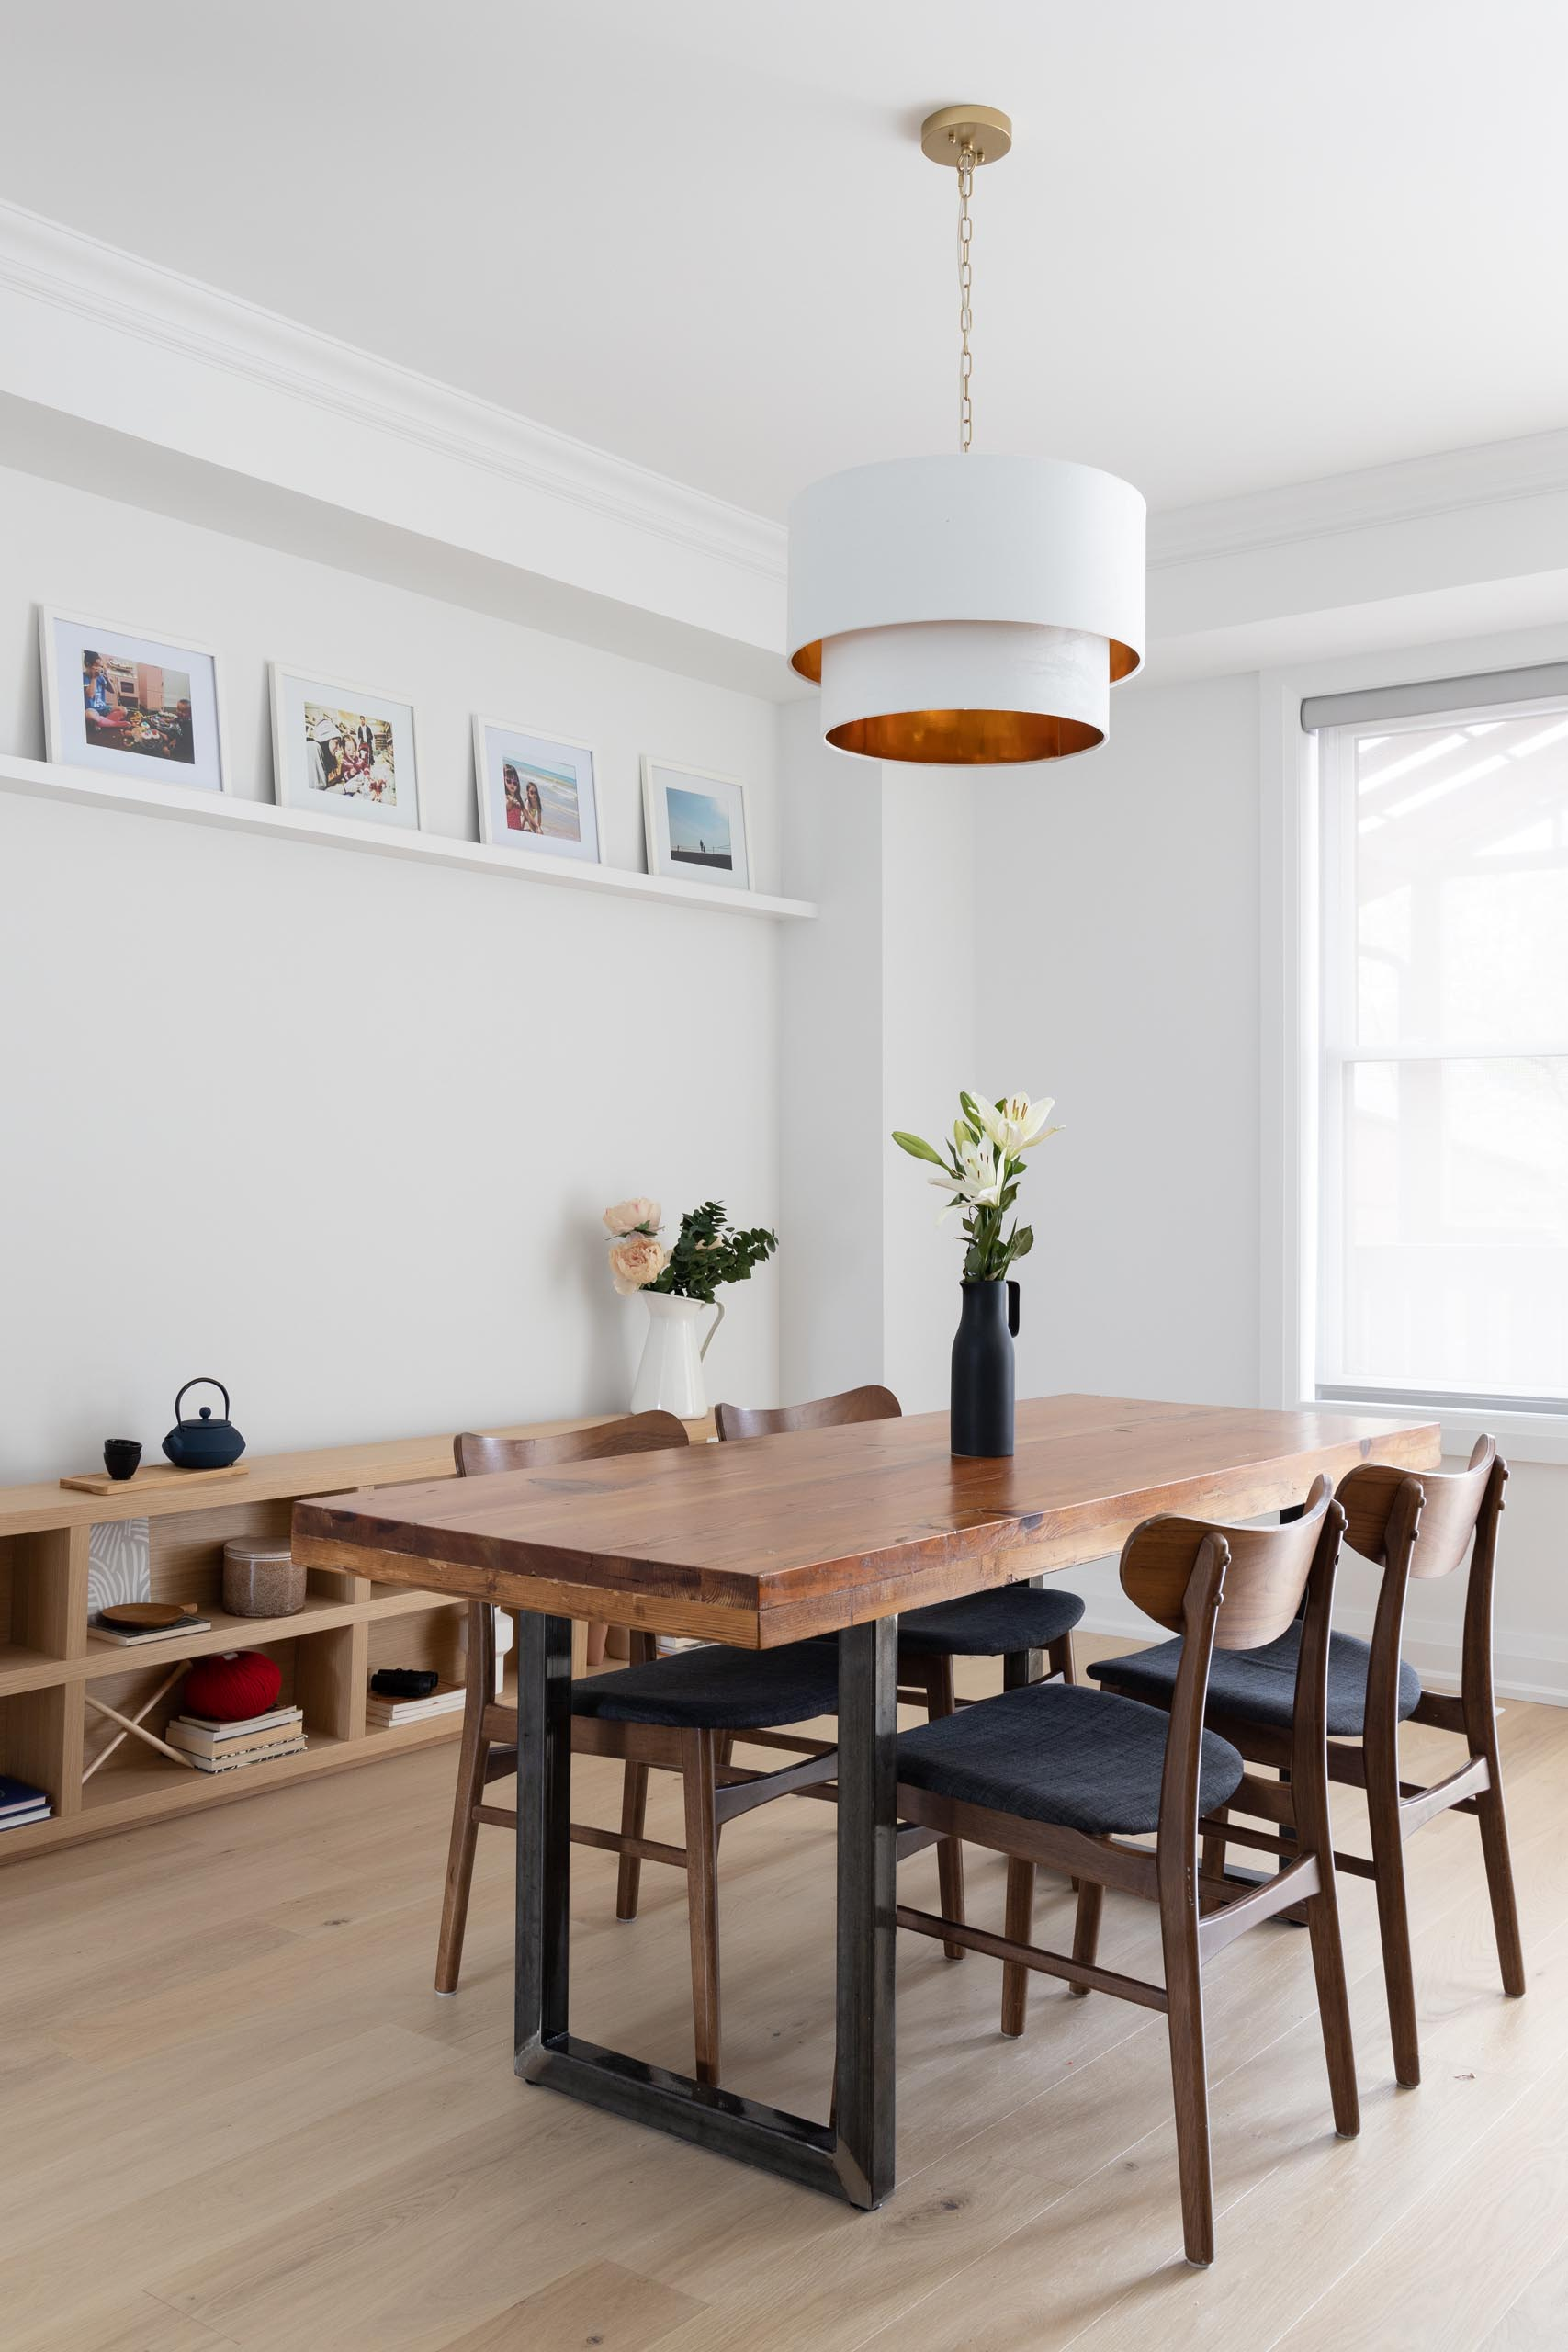 In this modern dining room, there's a wood table with a steel base that's located underneath a white pendant light with a metallic interior. A low wood console lines the wall, while a floating white shelf acts as a picture rail for family photos.